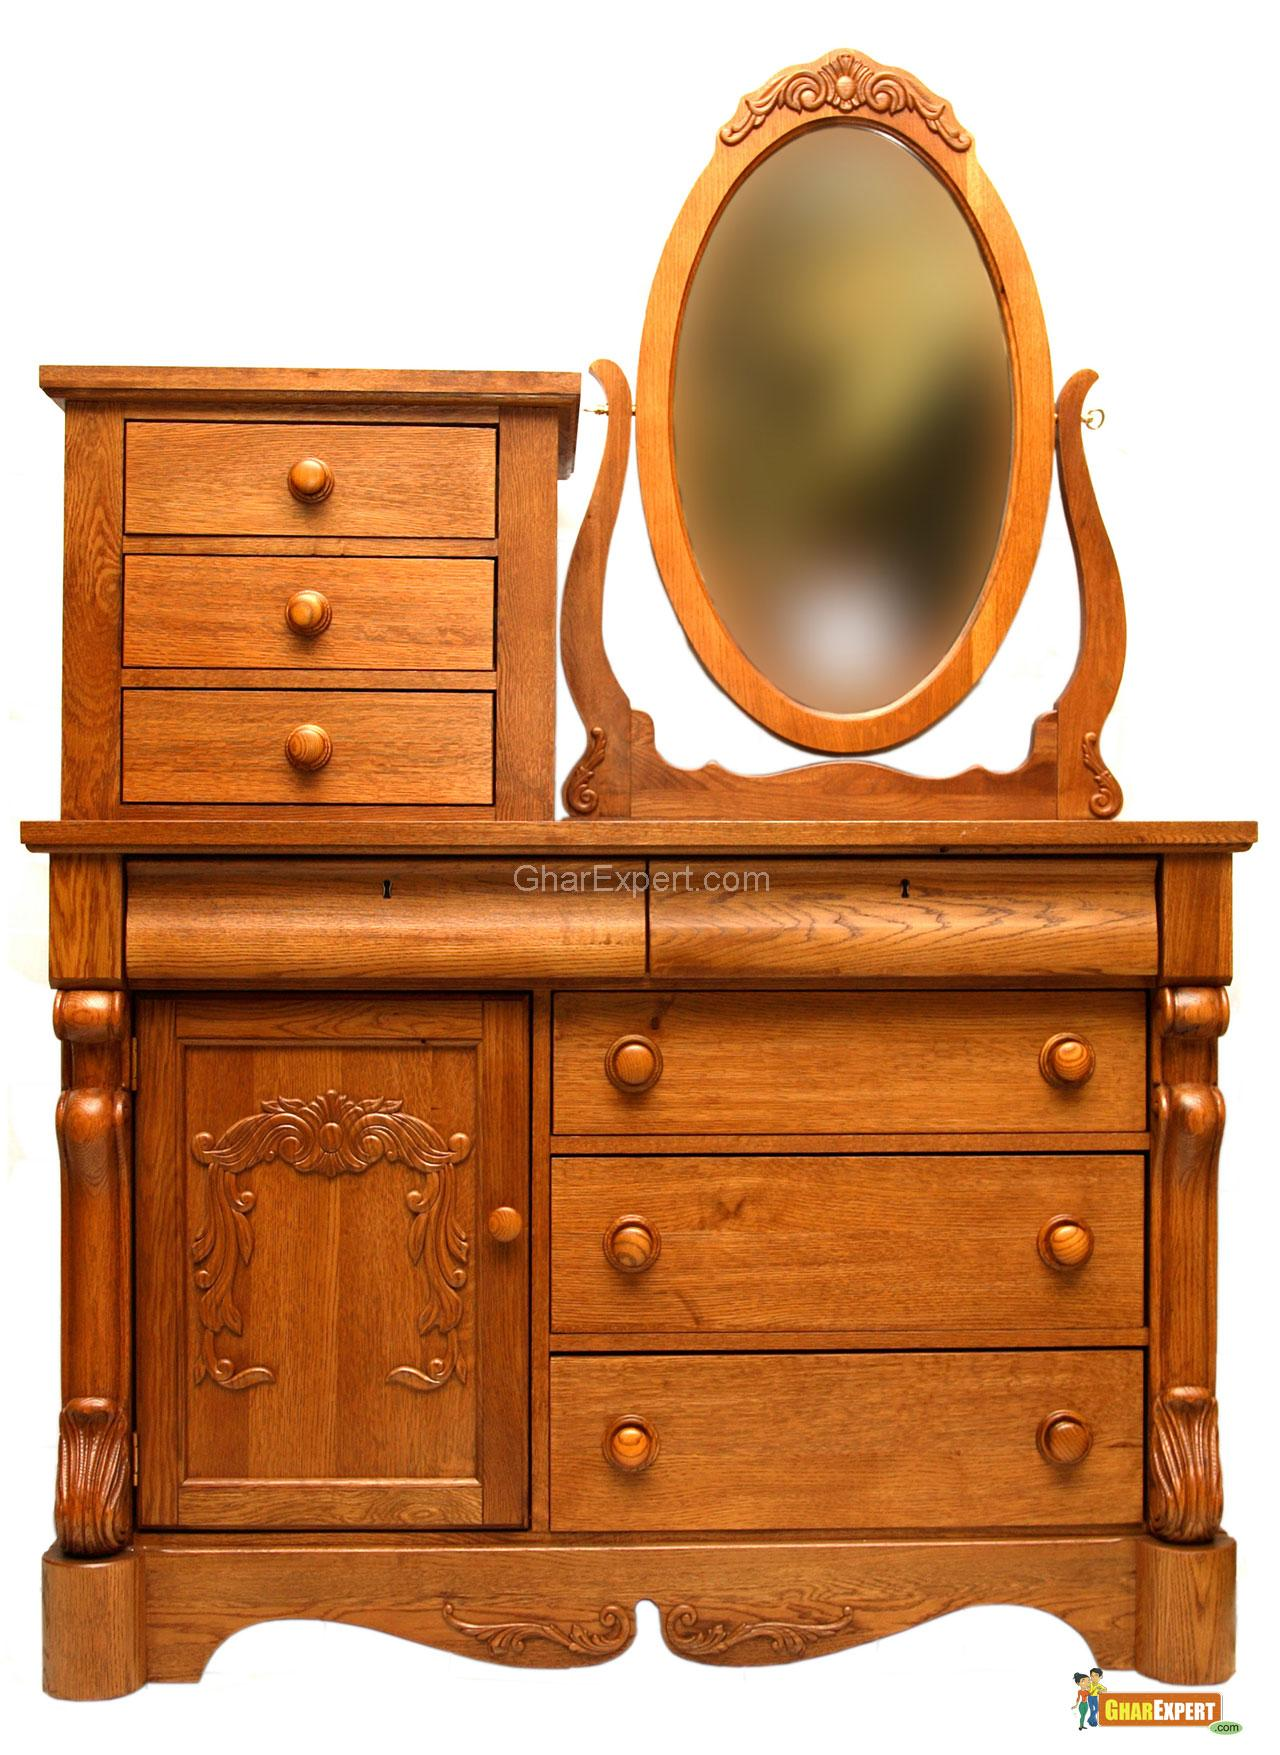 Yogesh Sharma Furniture Dressing Table. Furniture Design Dressing Table   Interior Design